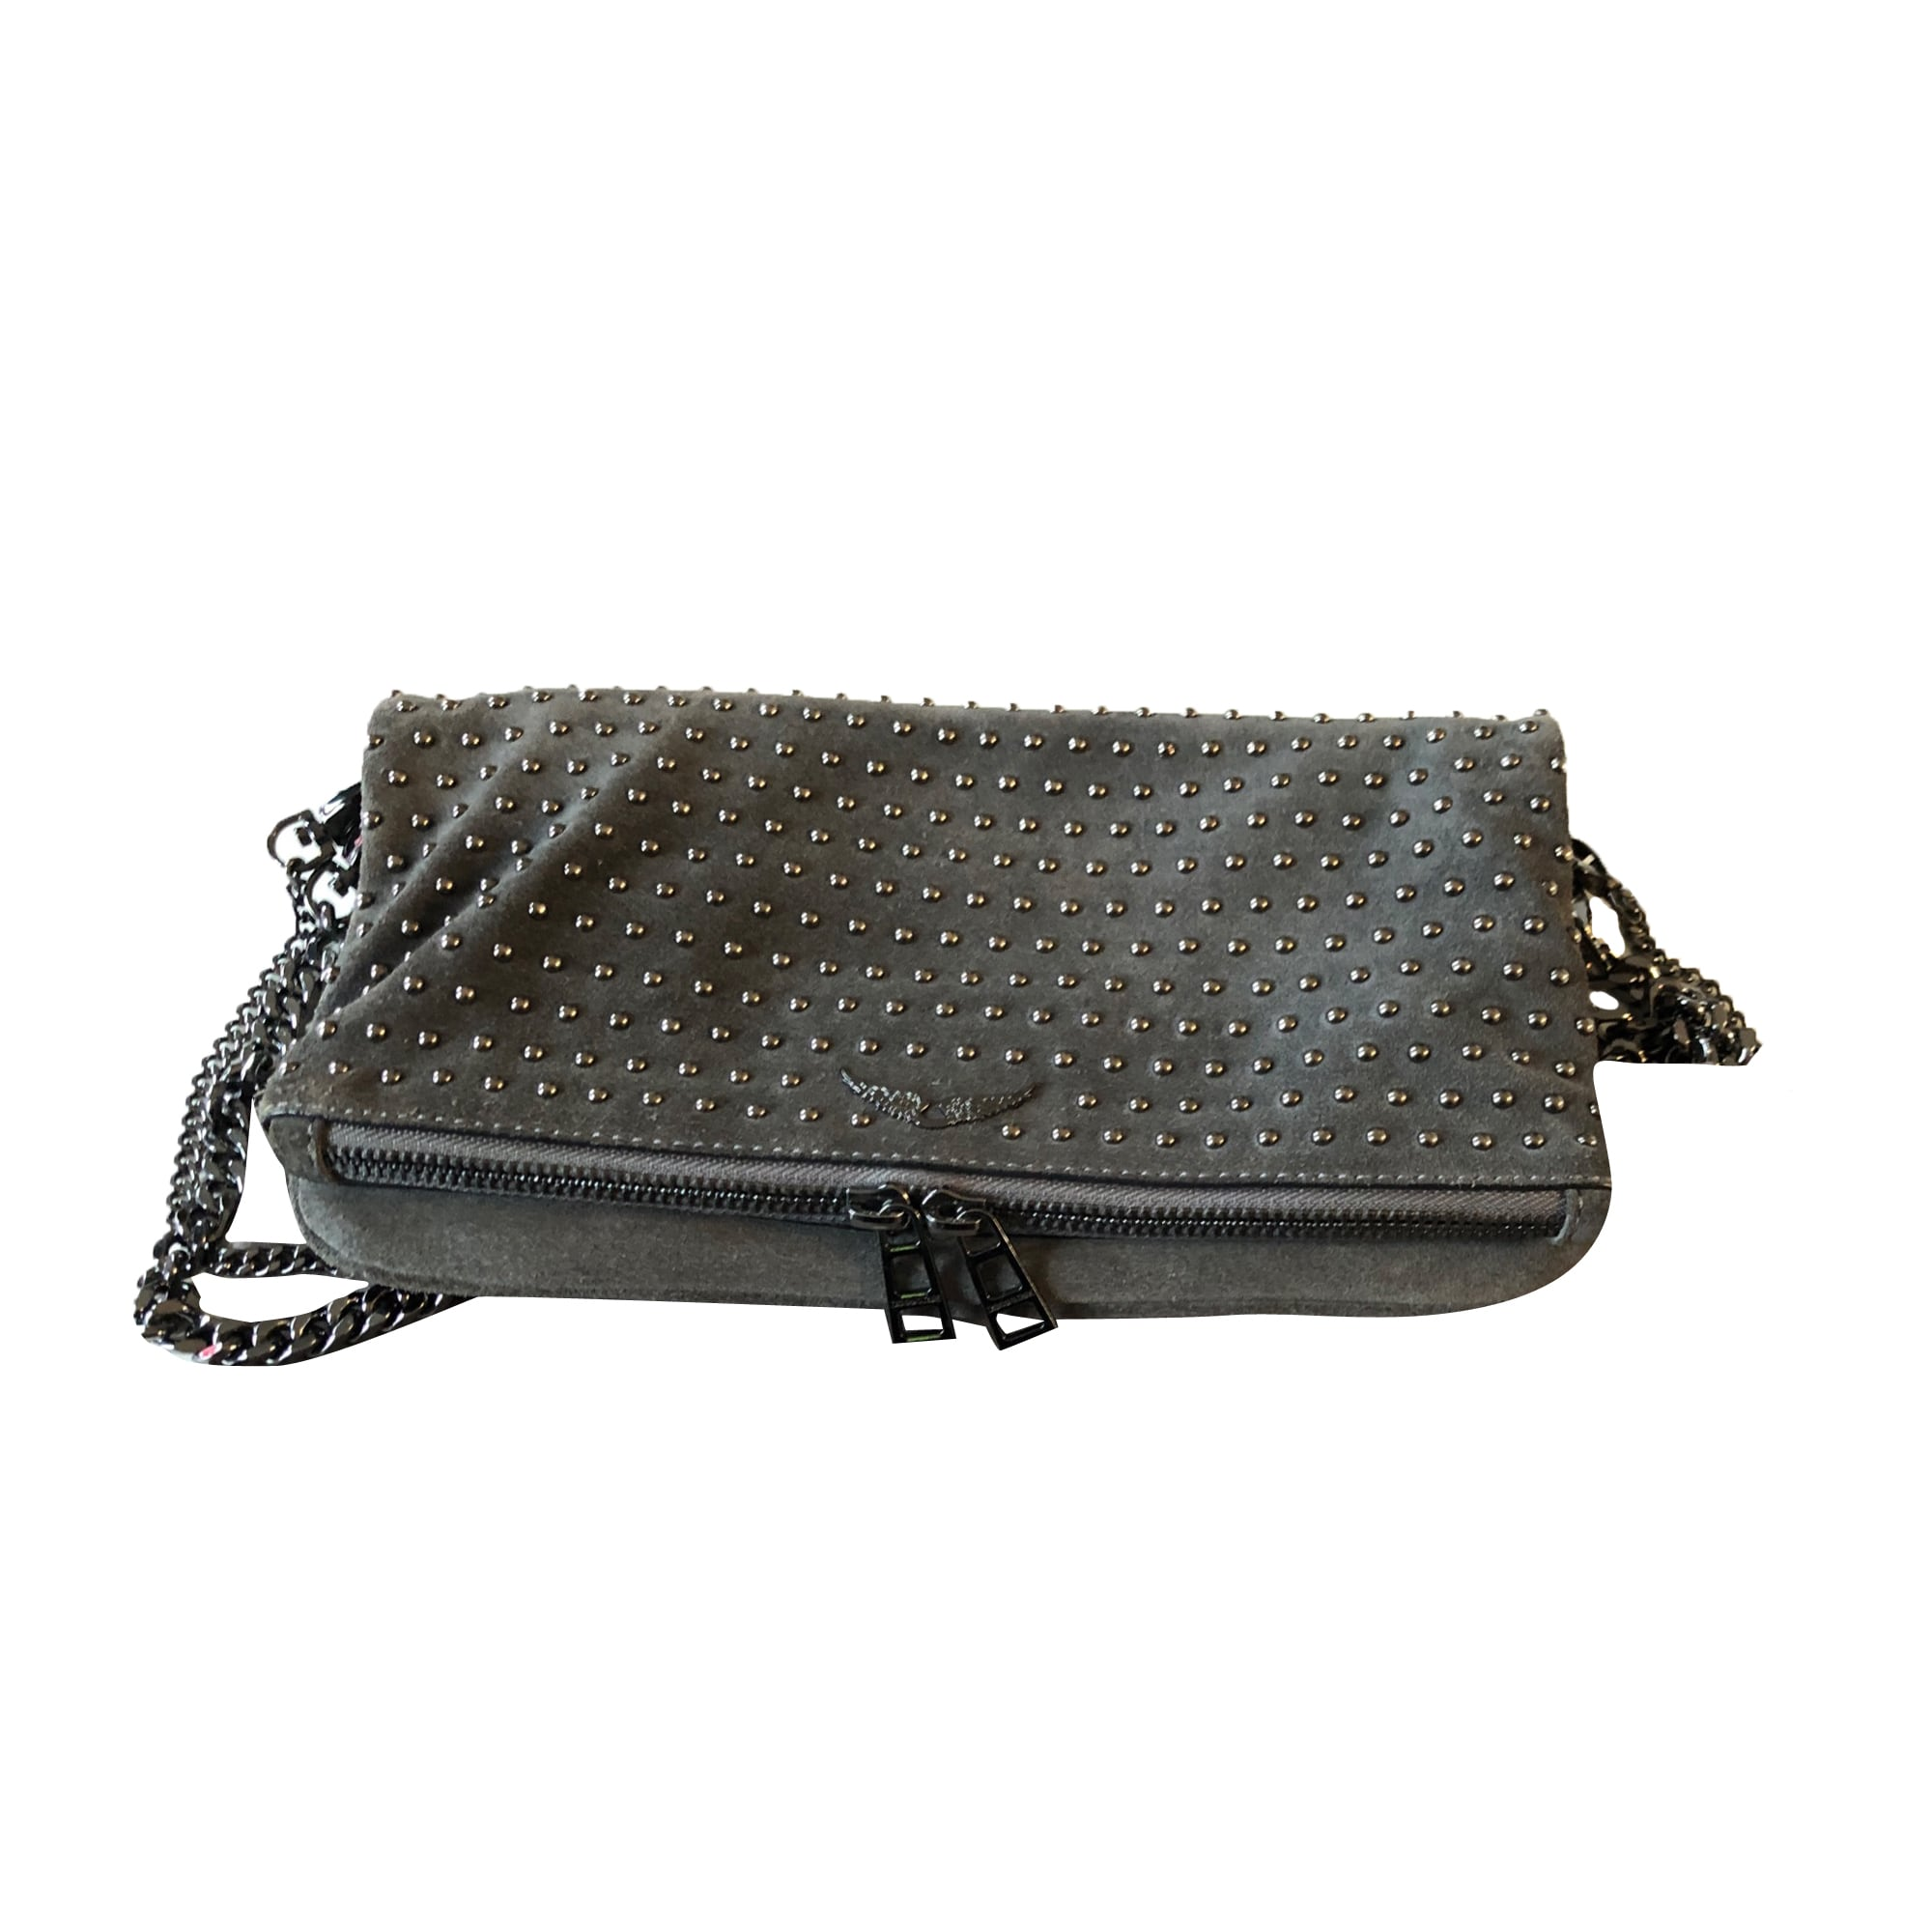 Leather Clutch ZADIG & VOLTAIRE Gray, charcoal